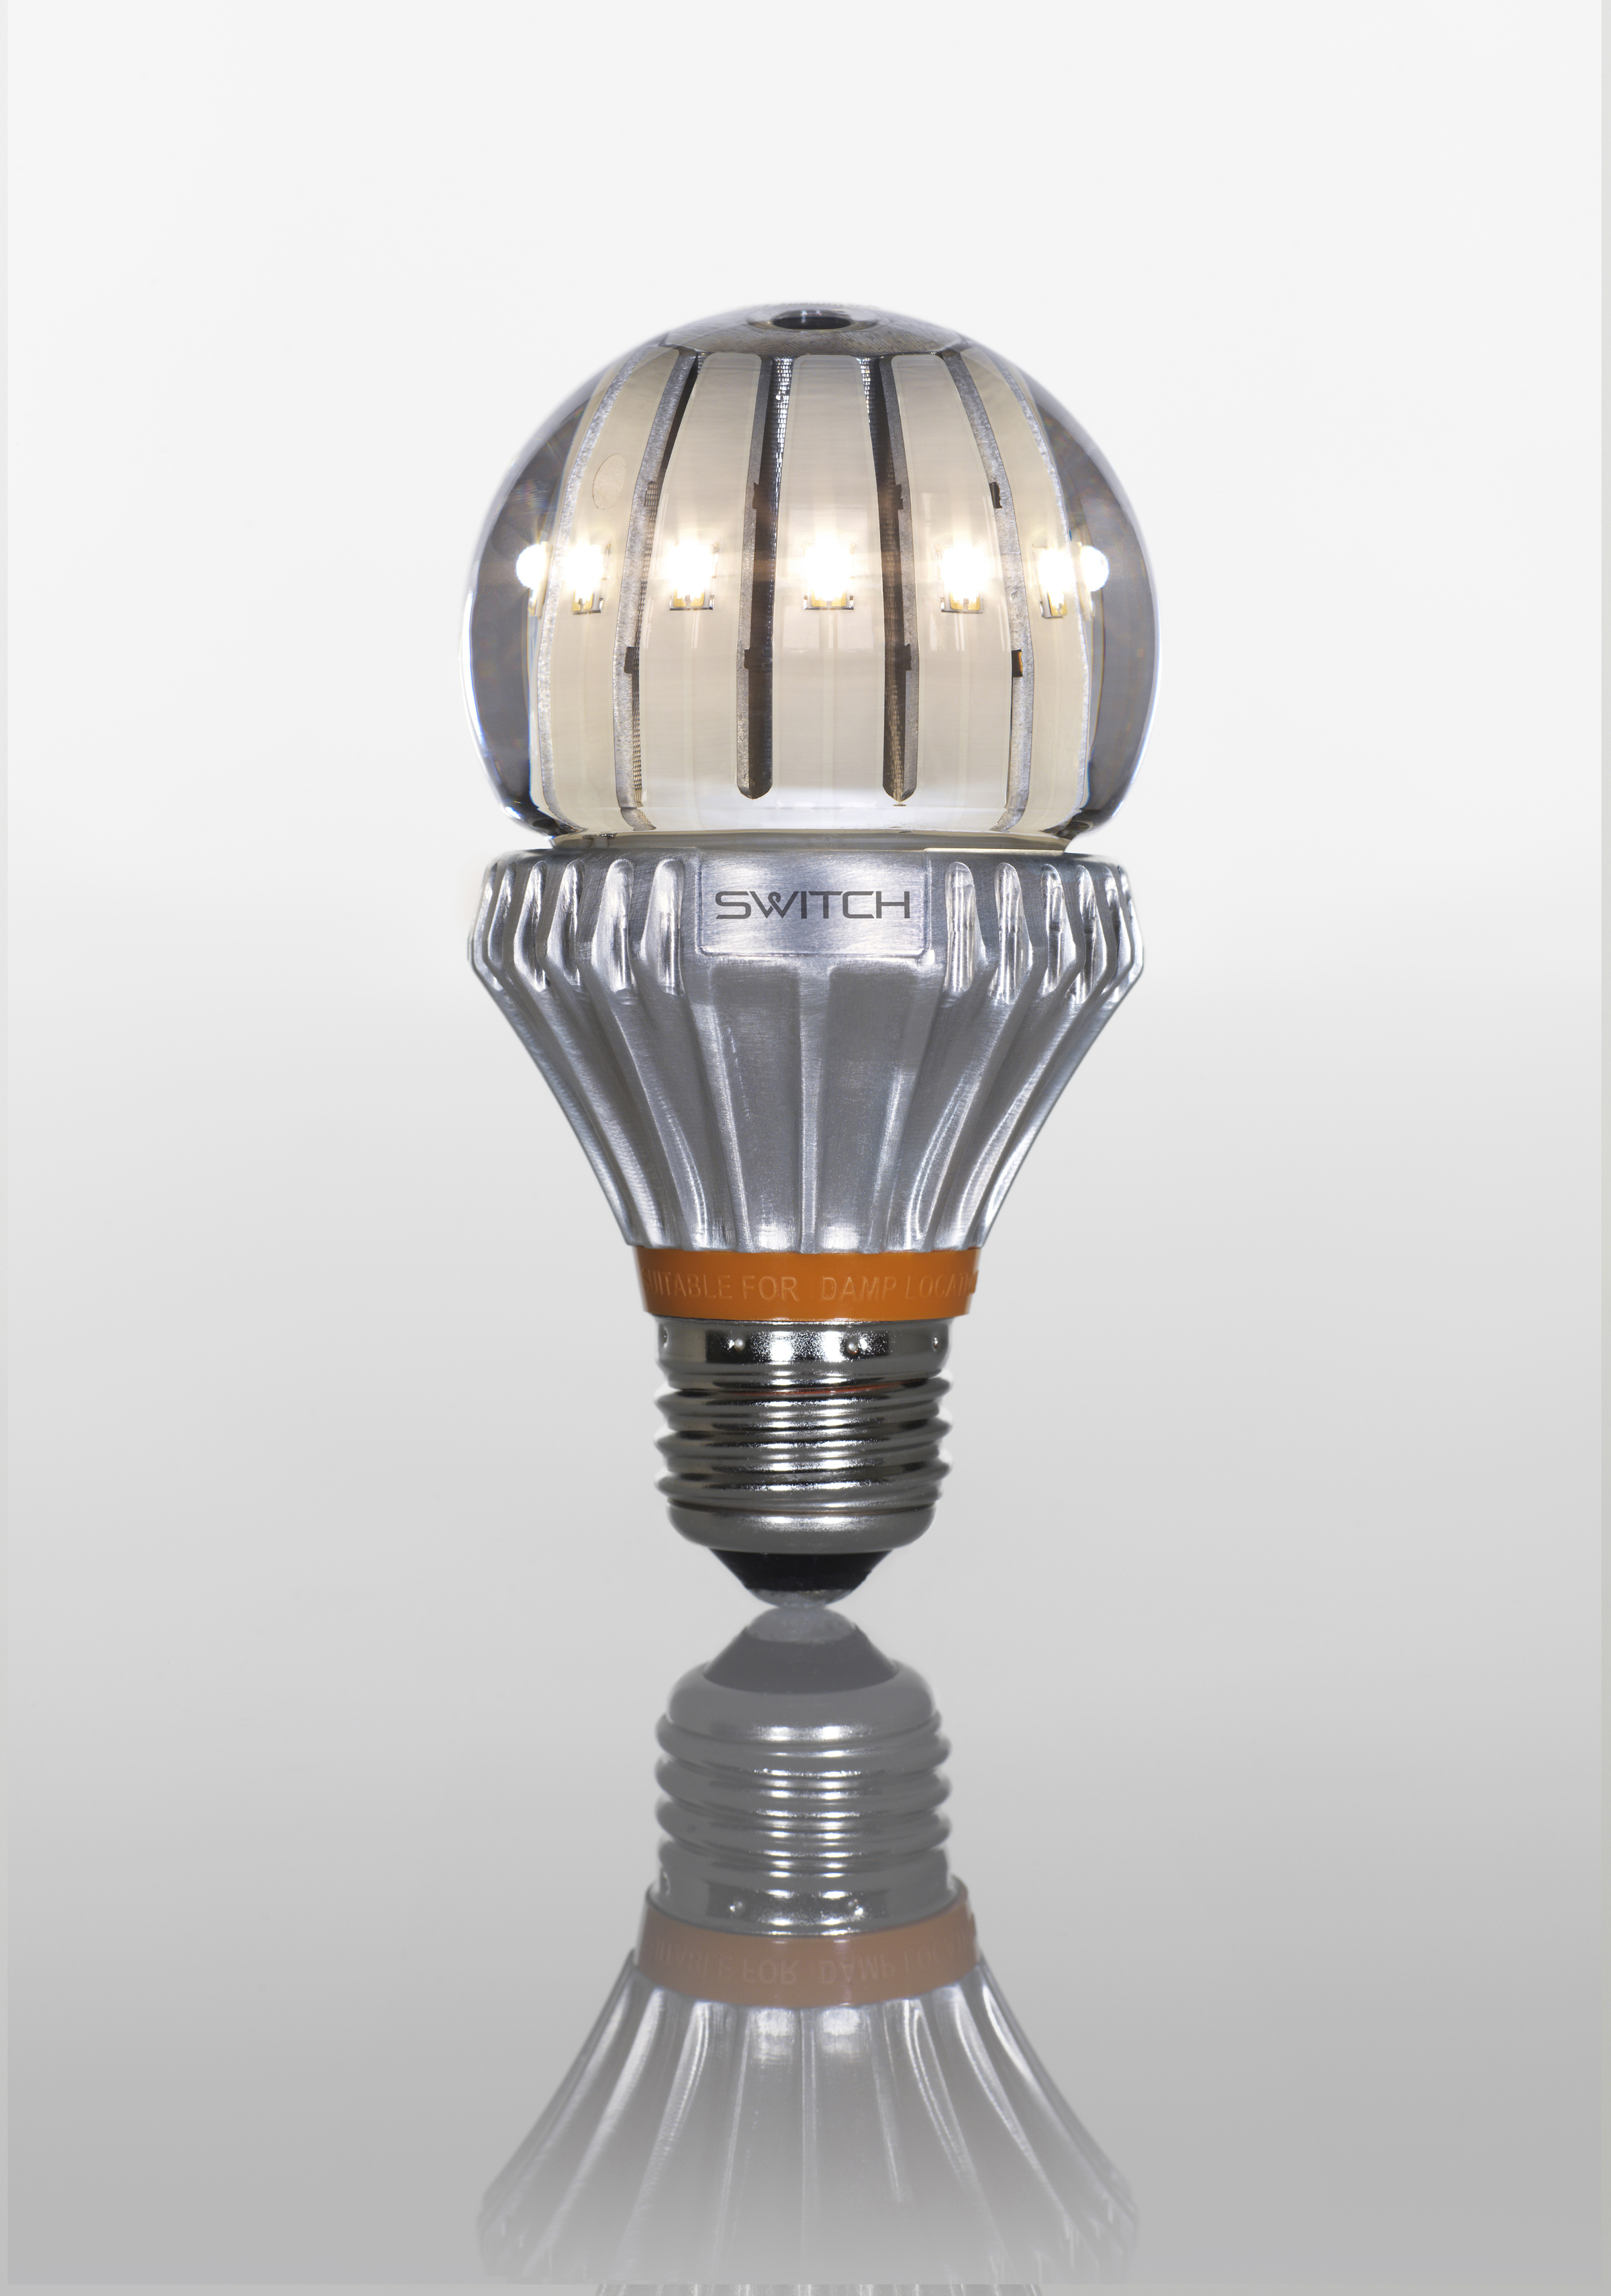 Transferring Efficiency Confusion Into Sales Of Efficient Light Bulbs